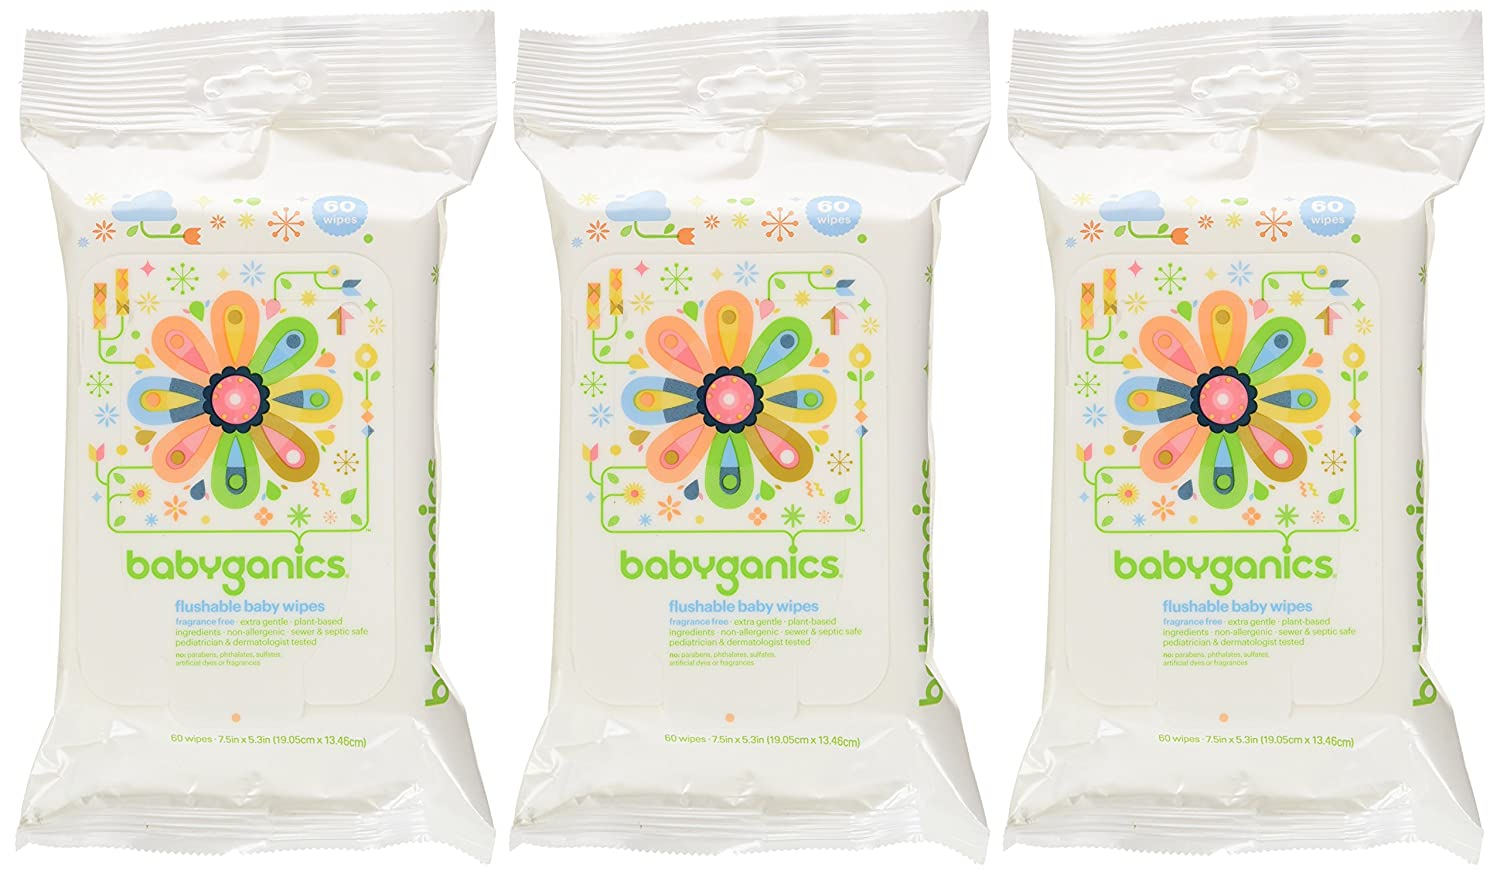 Babyganics Flushable Wipes: The Best biodegradable Baby Wipes